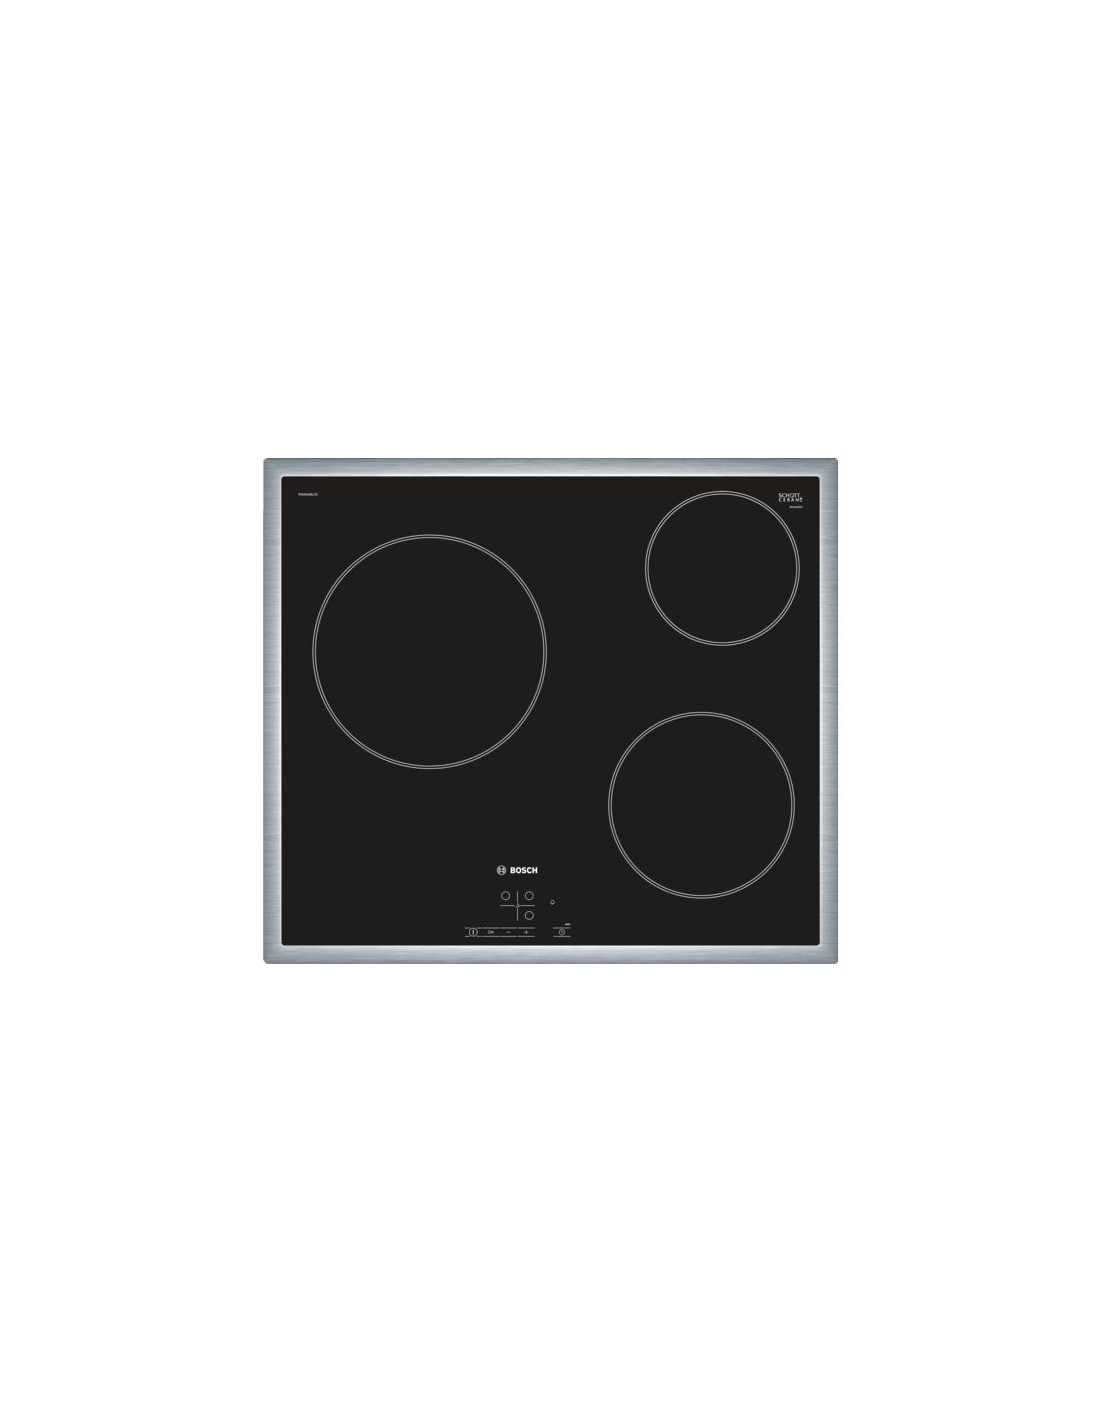 plaque de cuisson bosch pkm645b17e m s d electrom nager. Black Bedroom Furniture Sets. Home Design Ideas